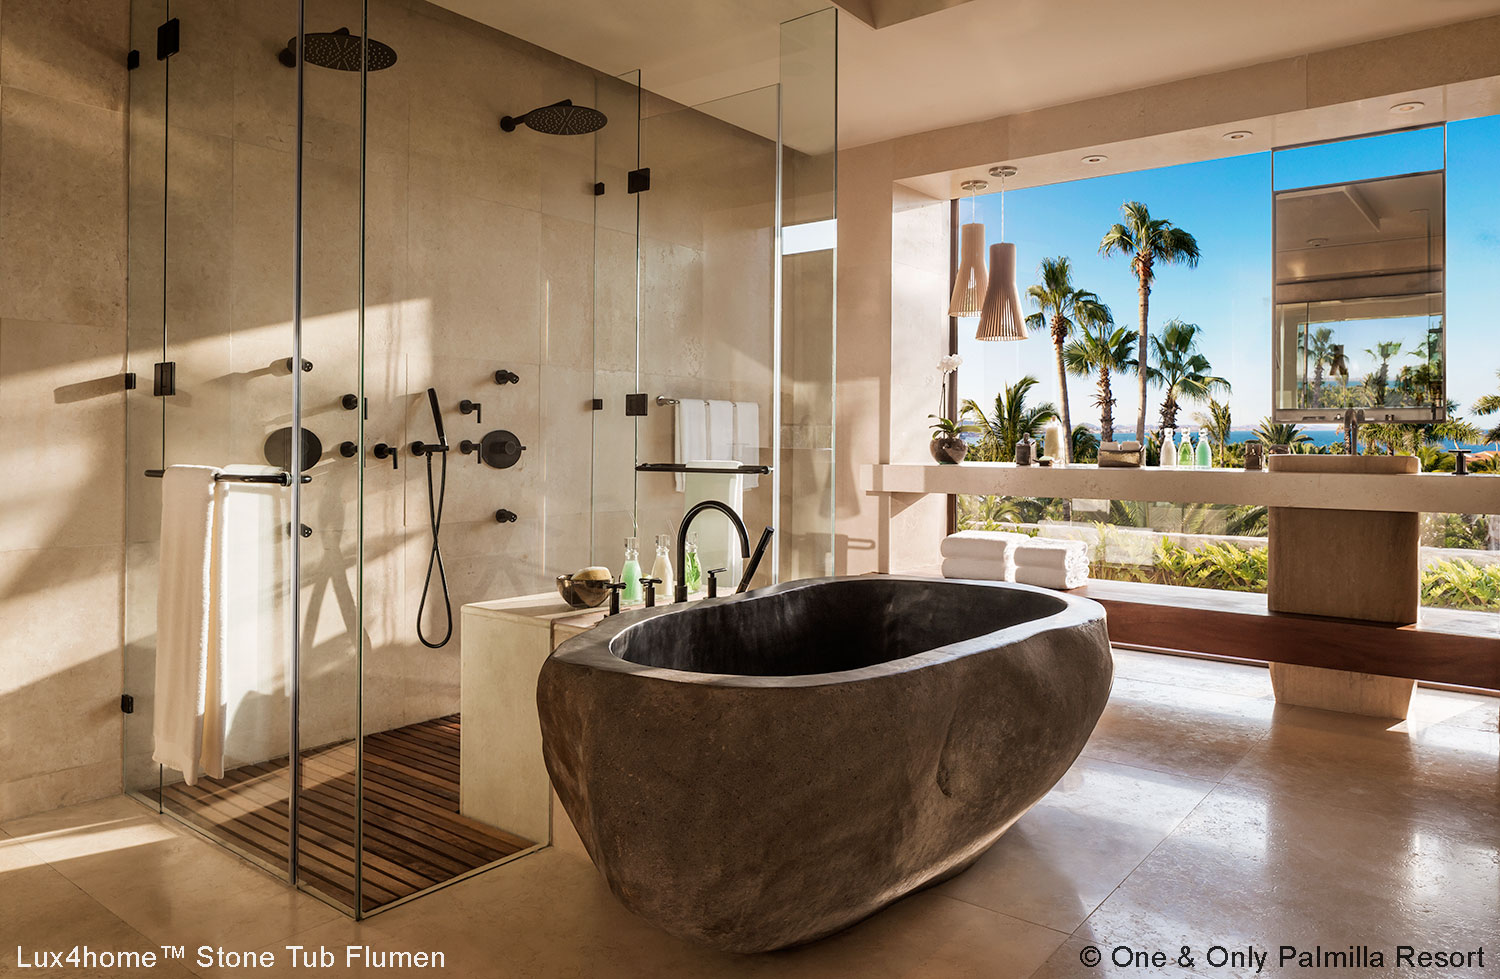 River Stone Tub - Soaking Bathtub